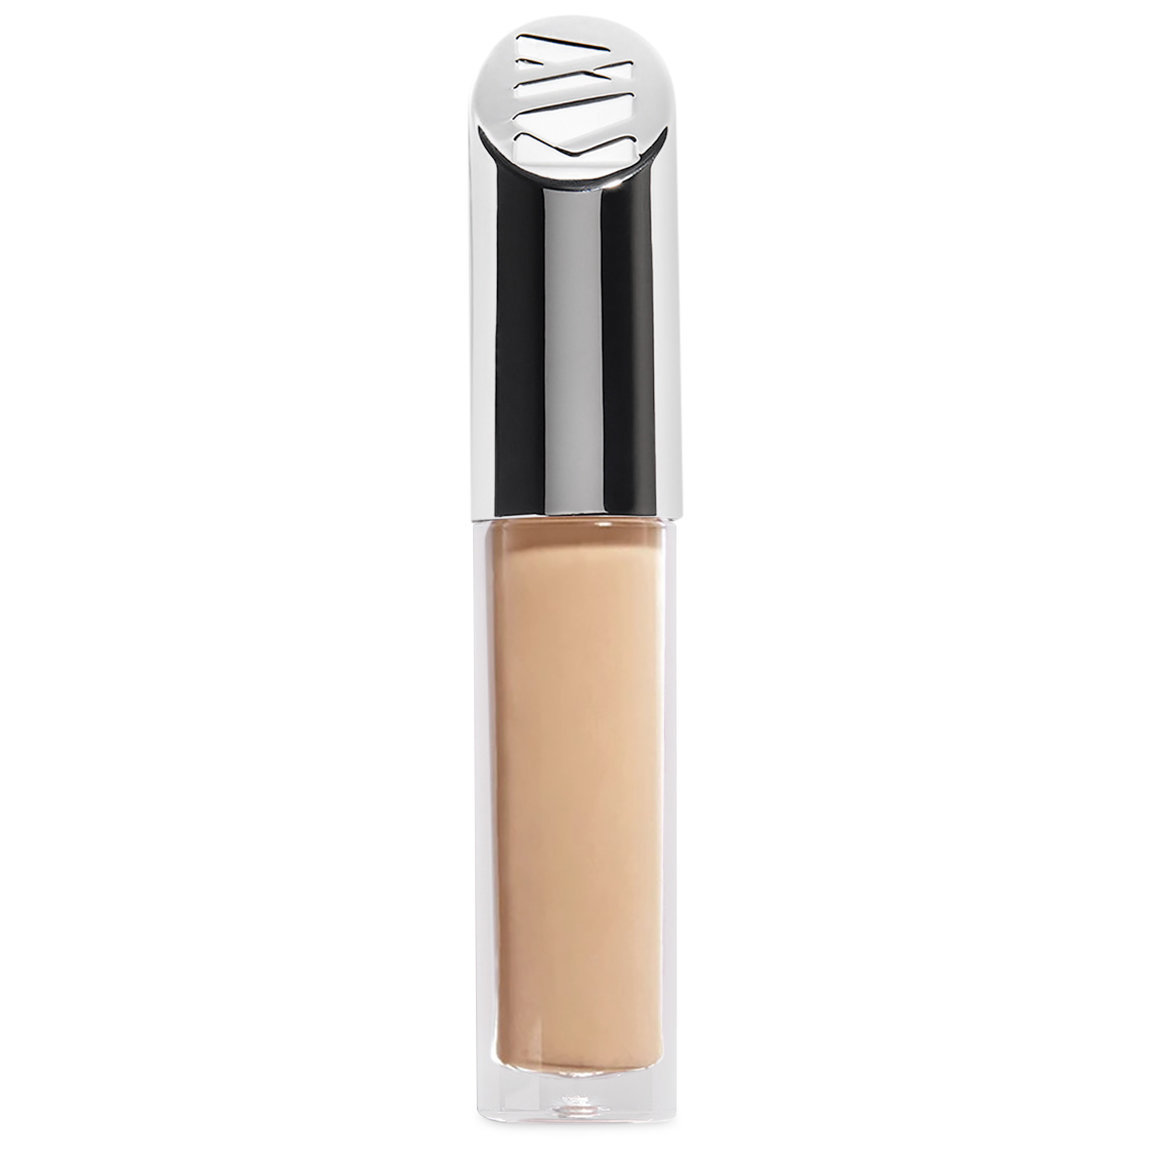 Kjaer Weis Invisible Touch Concealer F112 alternative view 1.